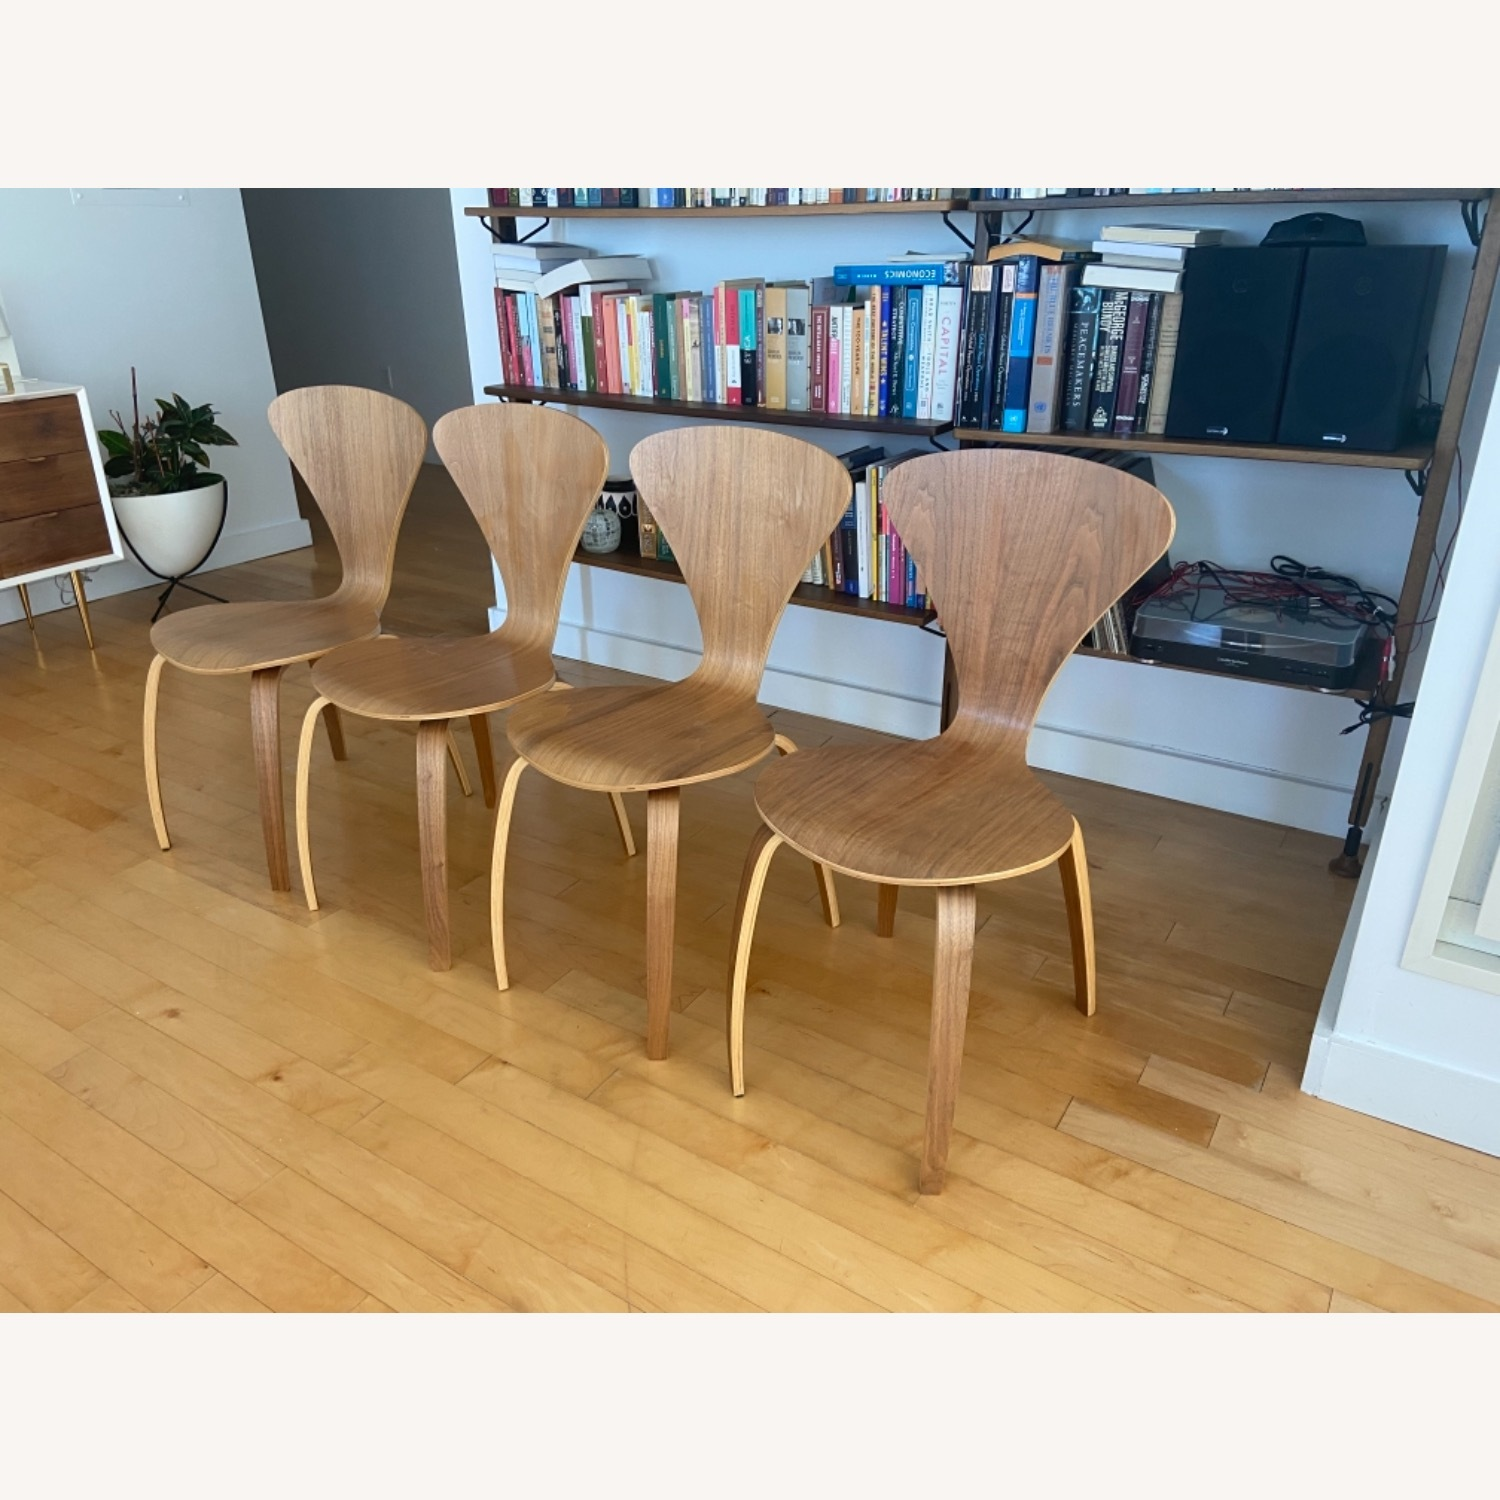 Cherner Replica Dining Chair Set - image-1